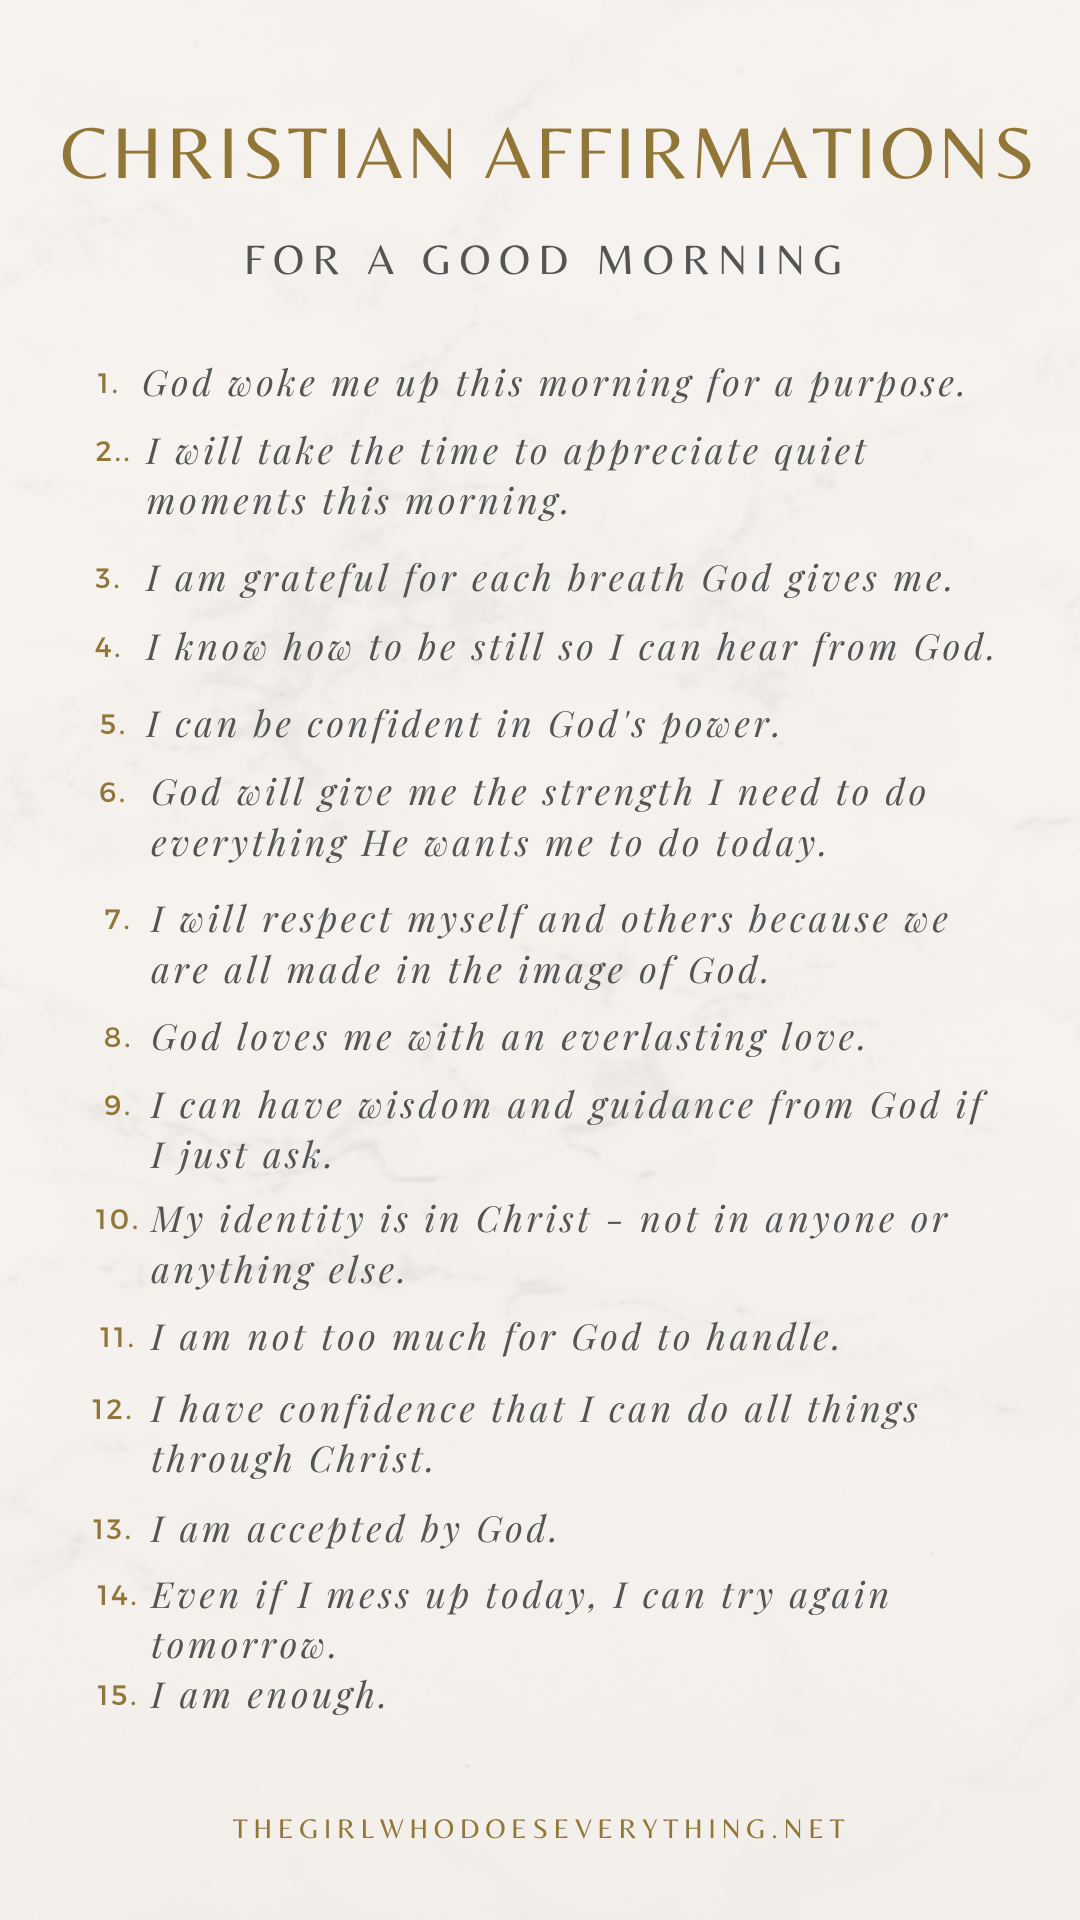 Christian Affirmations for a Good Morning